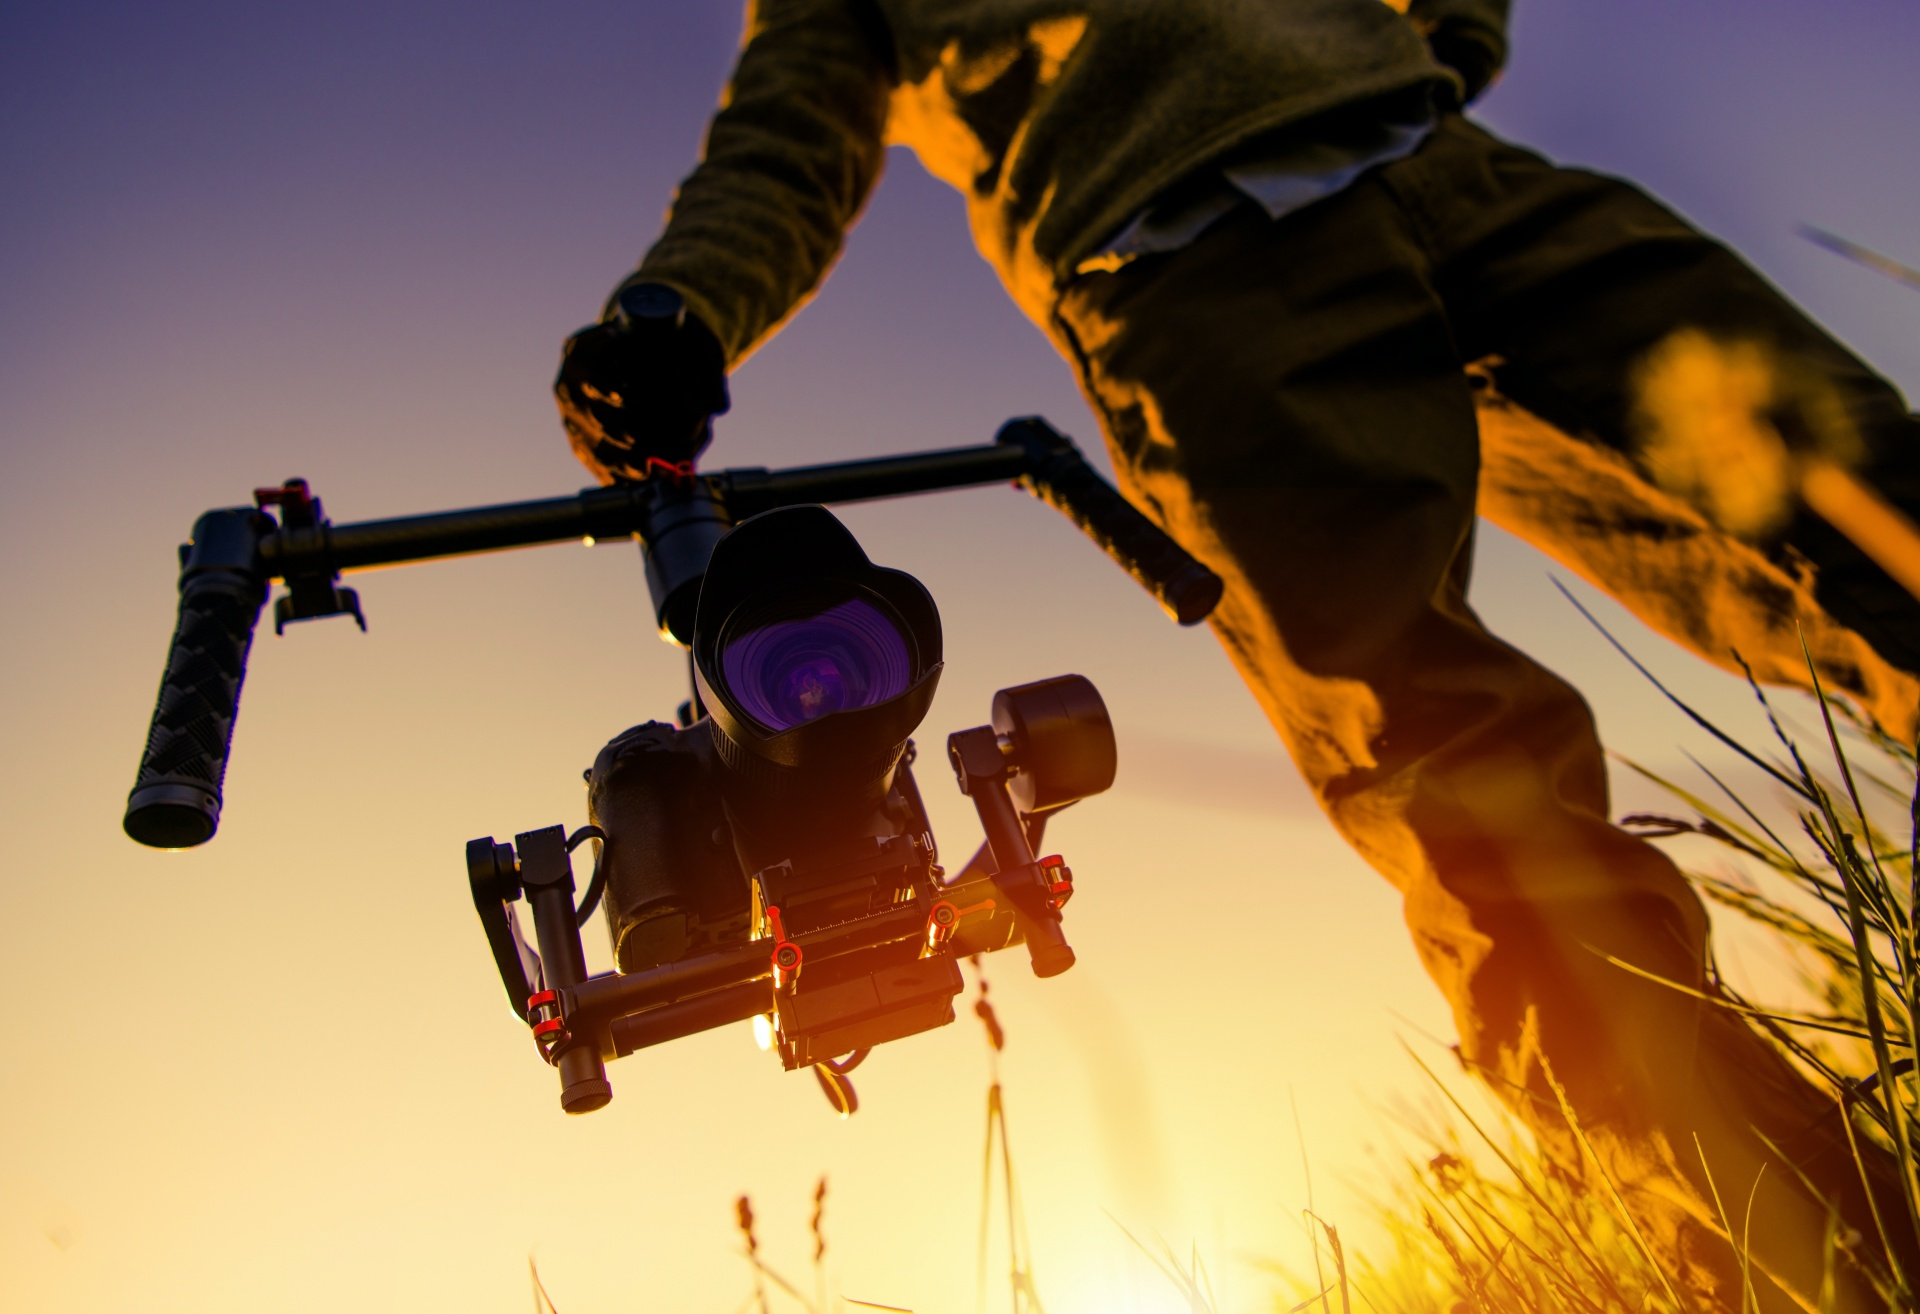 Man holding video equipment at dusk